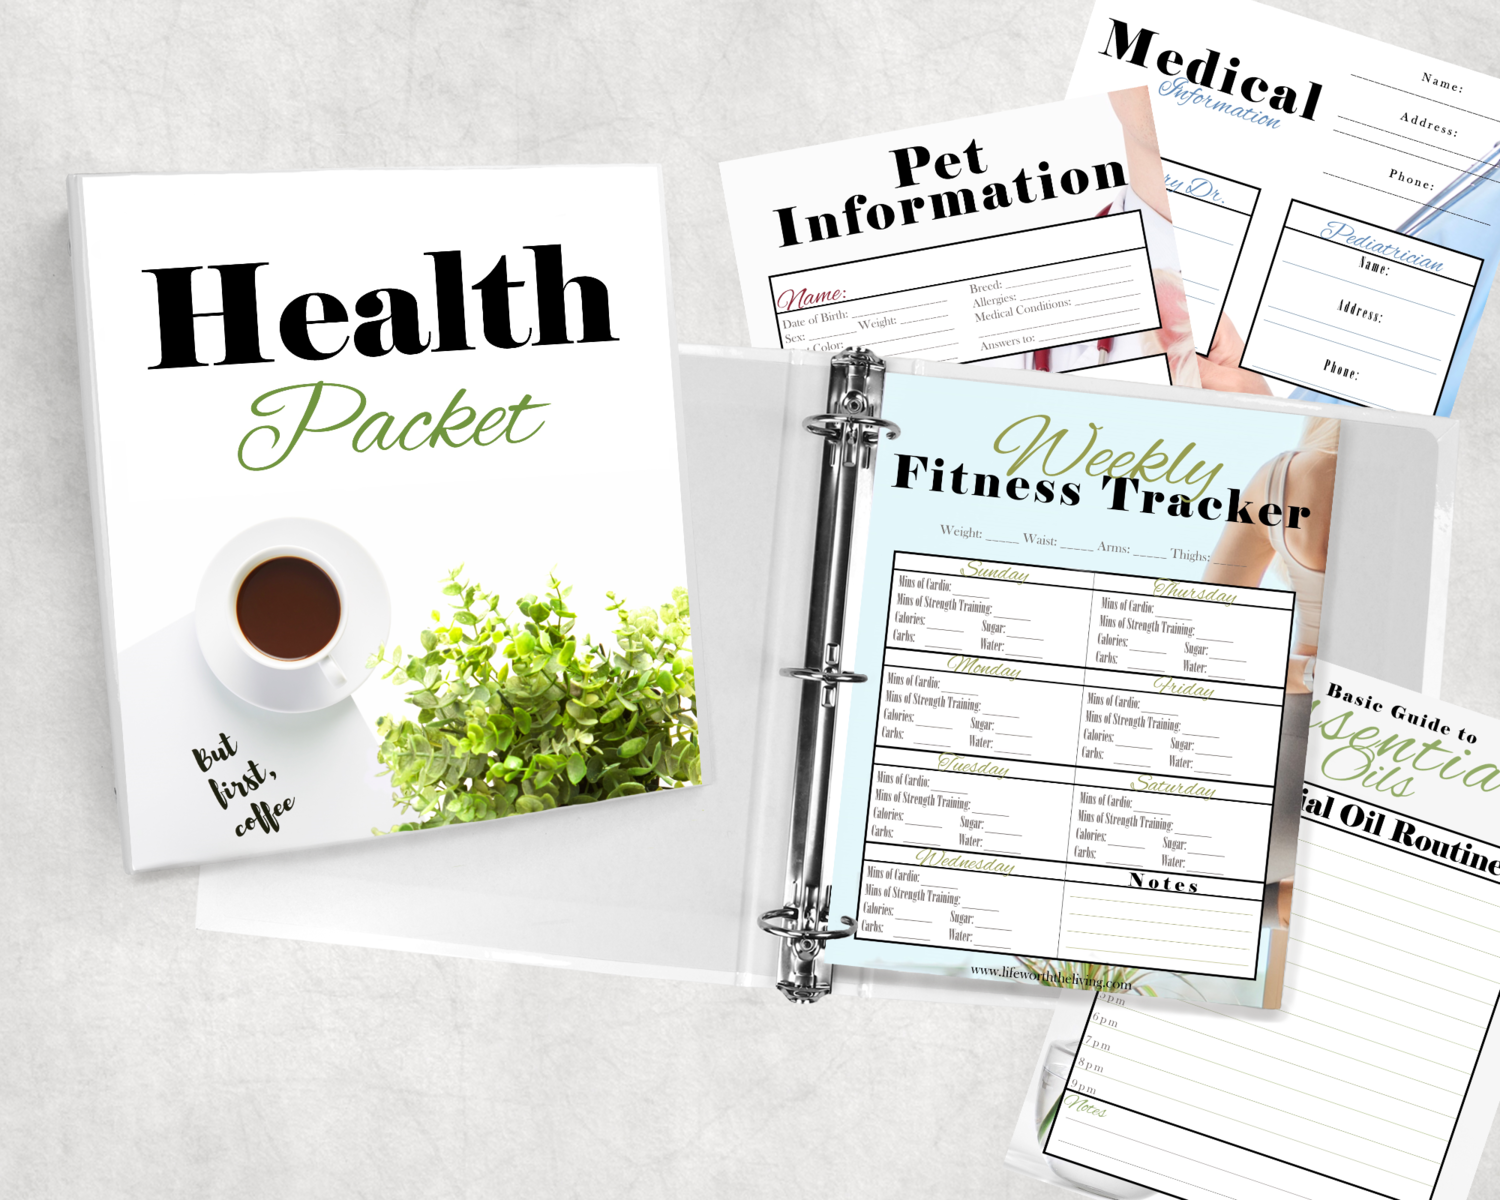 Health Packet